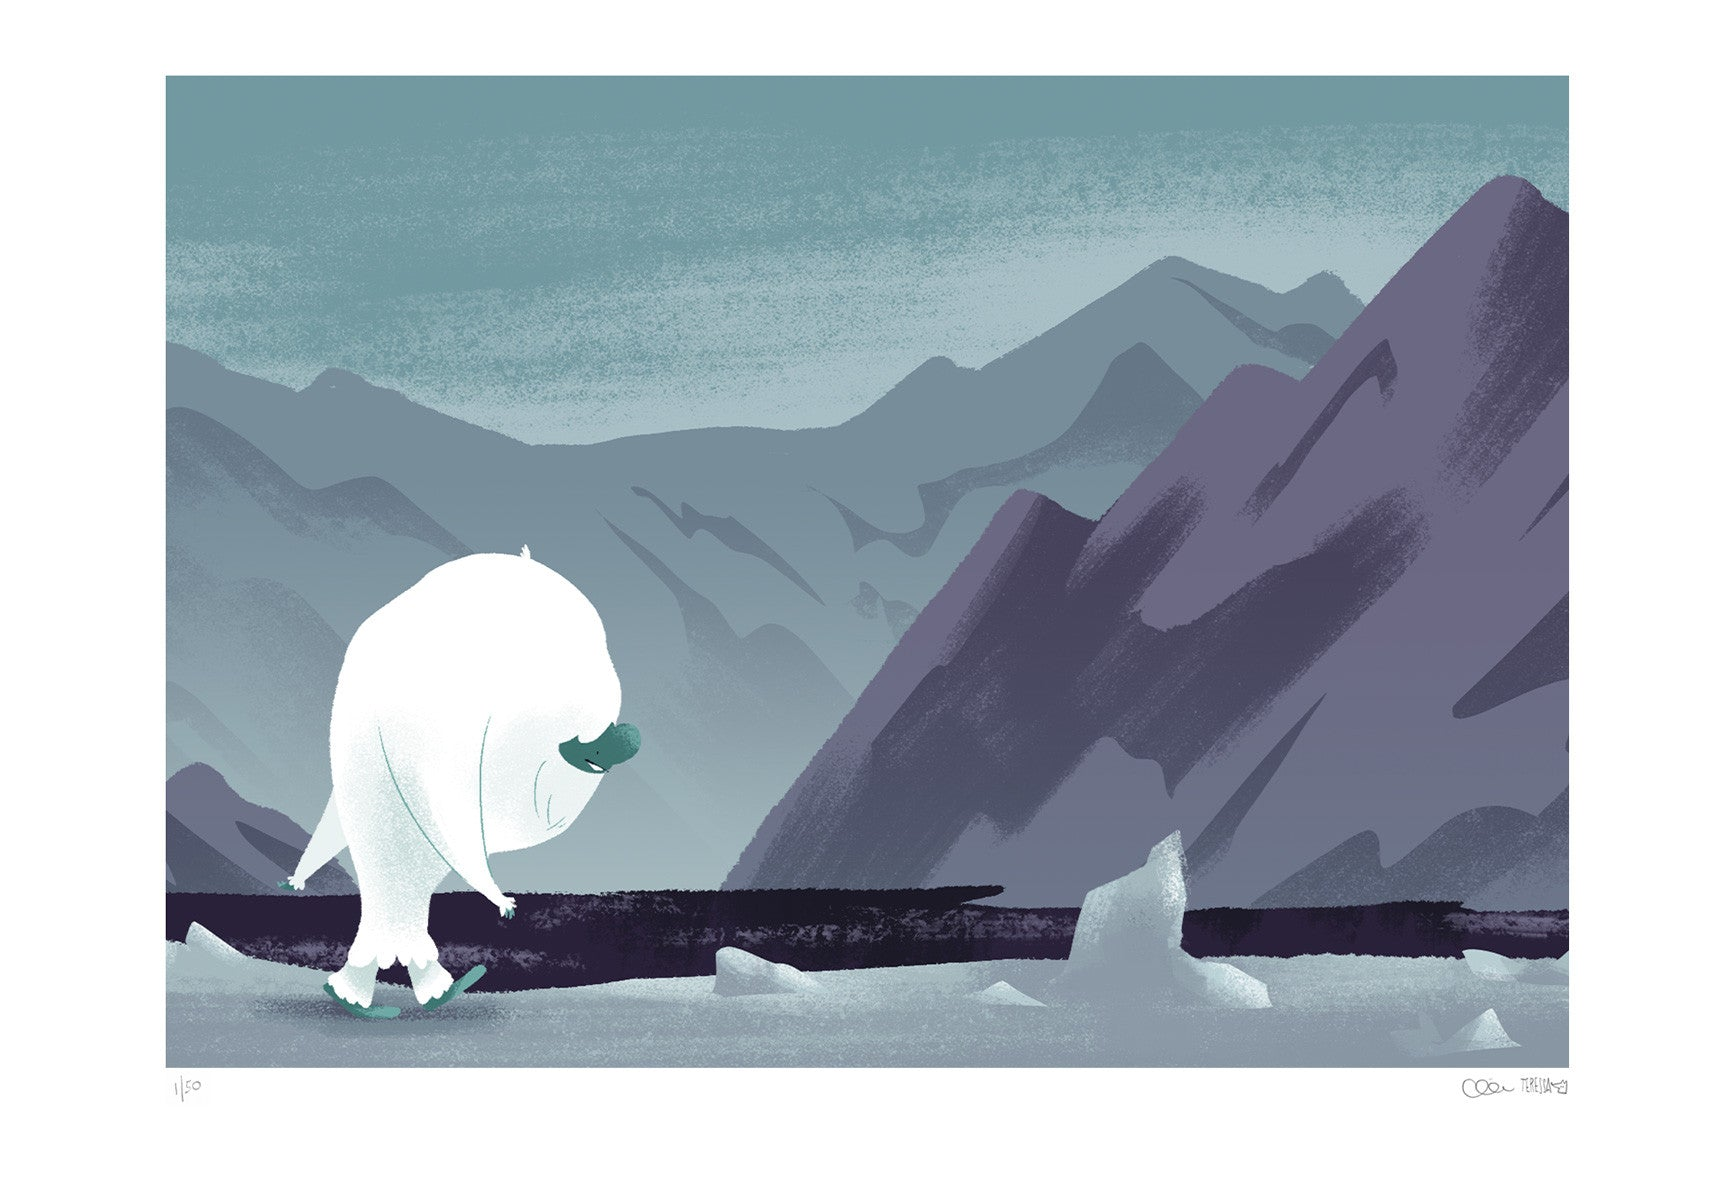 """On The Way"" from The Abominable Norman - A3 Giclée Print"